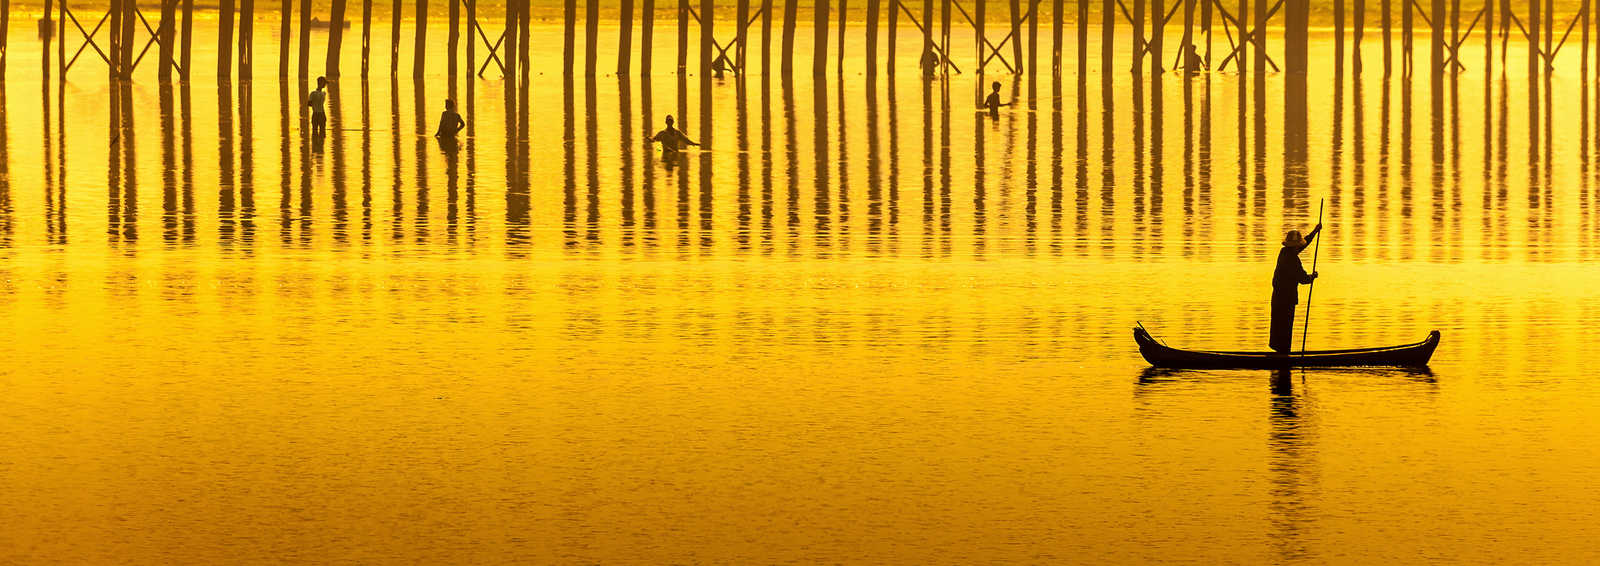 Sunset in U Bein bridge, Myanmar (Burma)